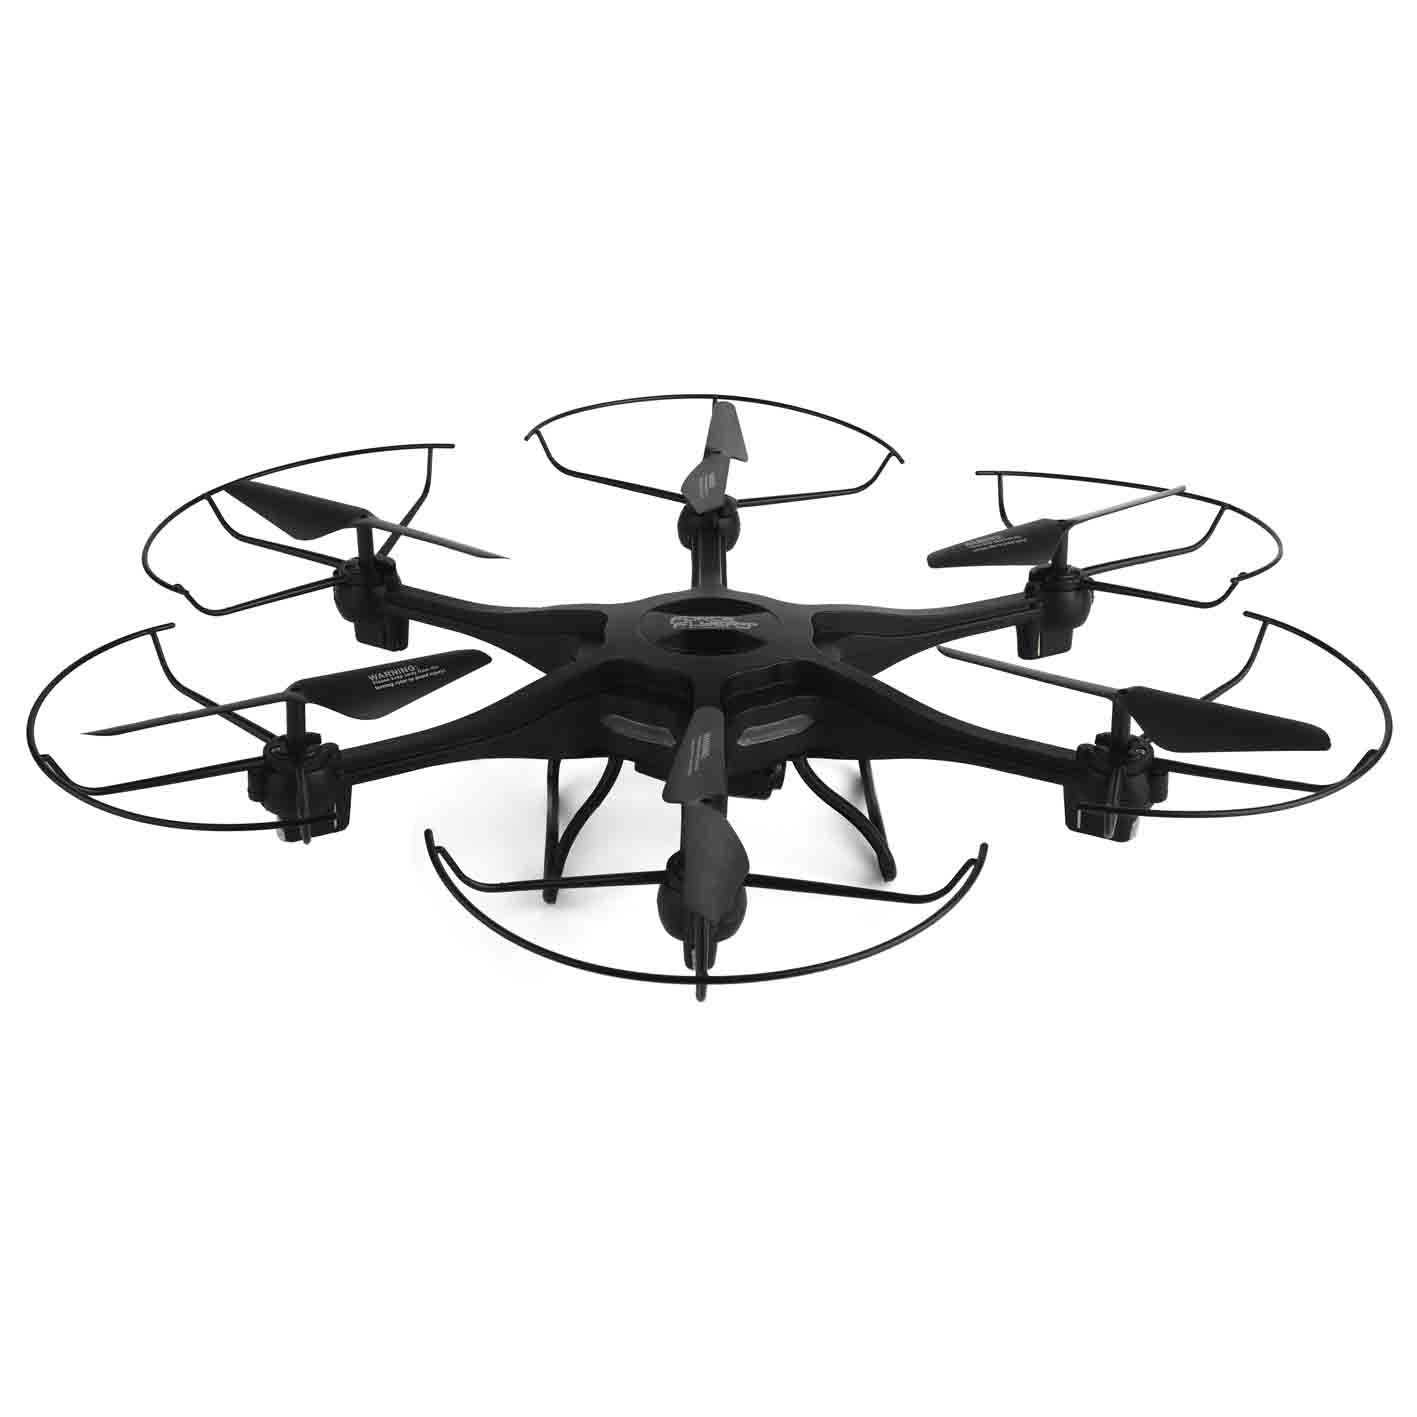 Force Flyers Adventurer Drone